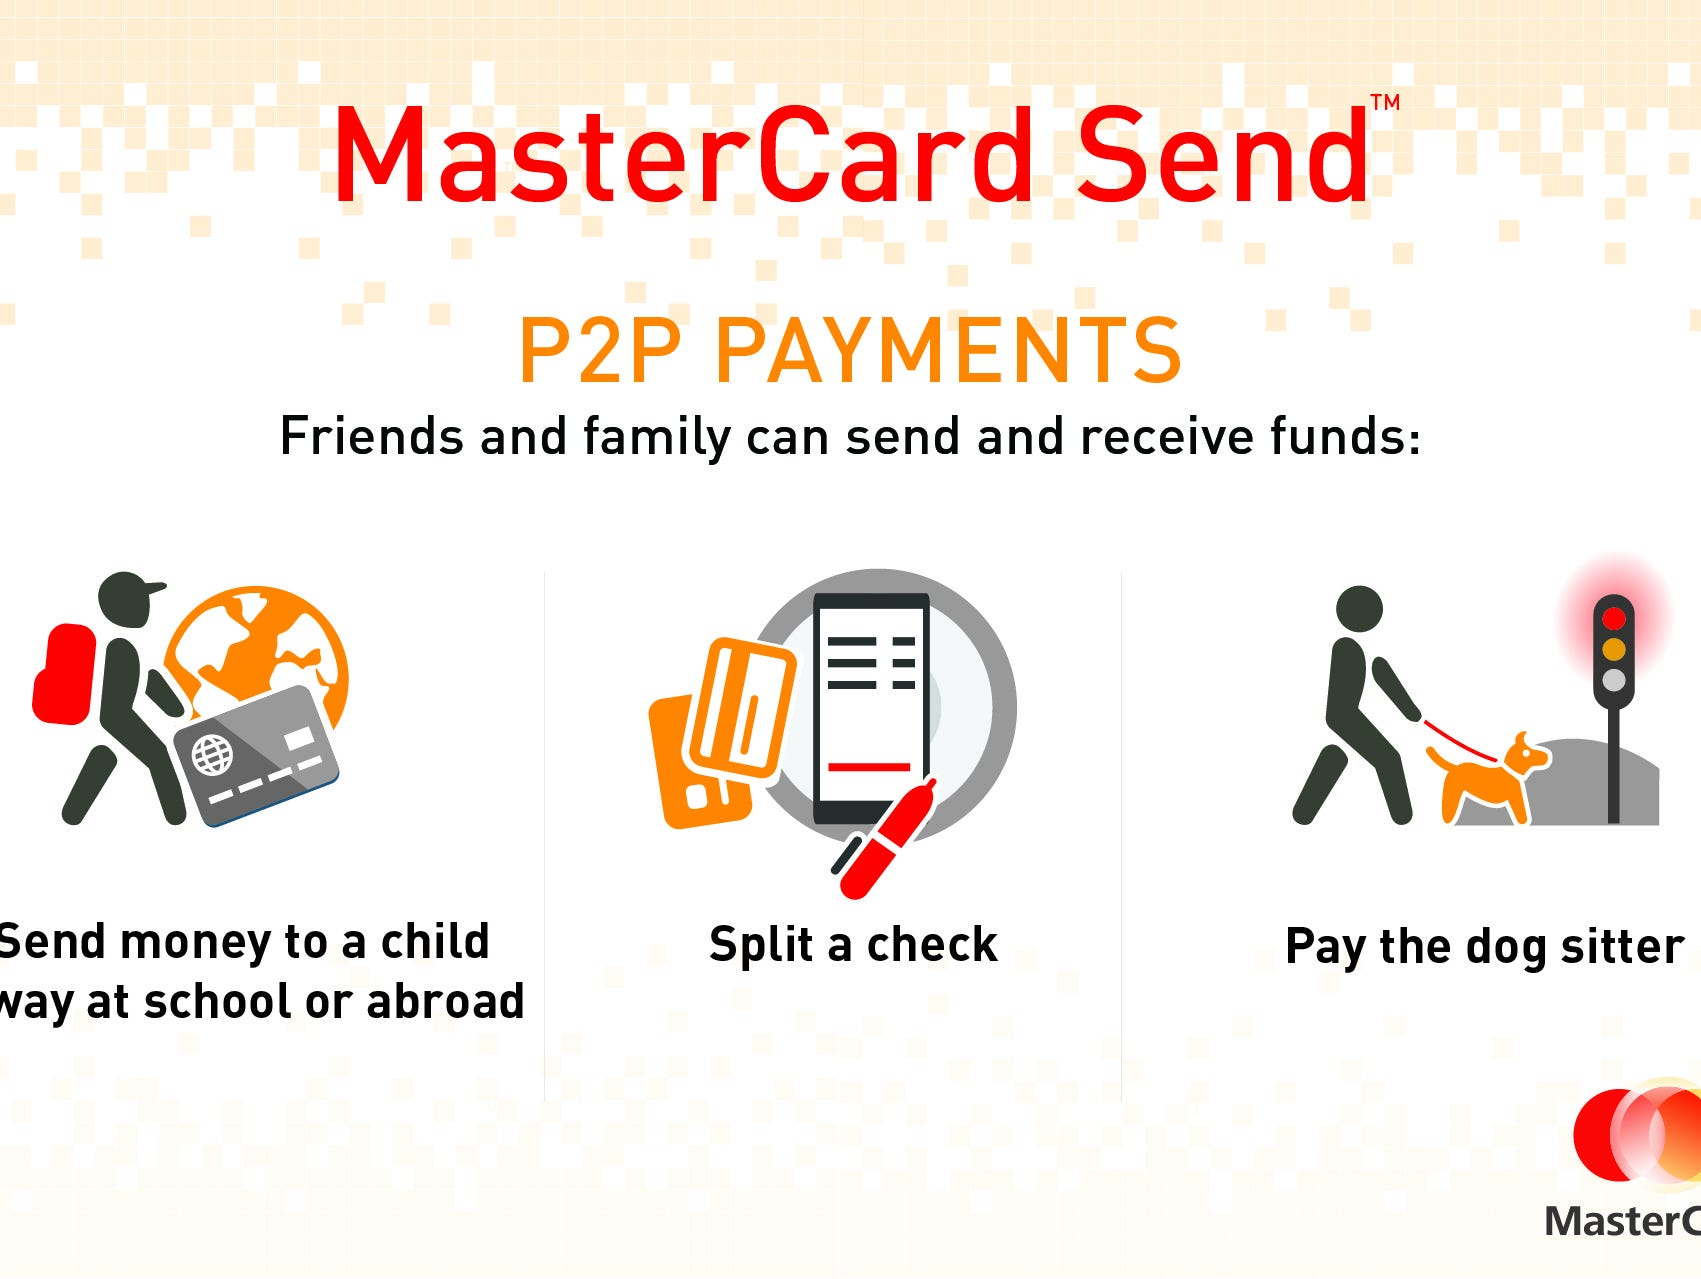 MasterCard aims to pay you more quickly.